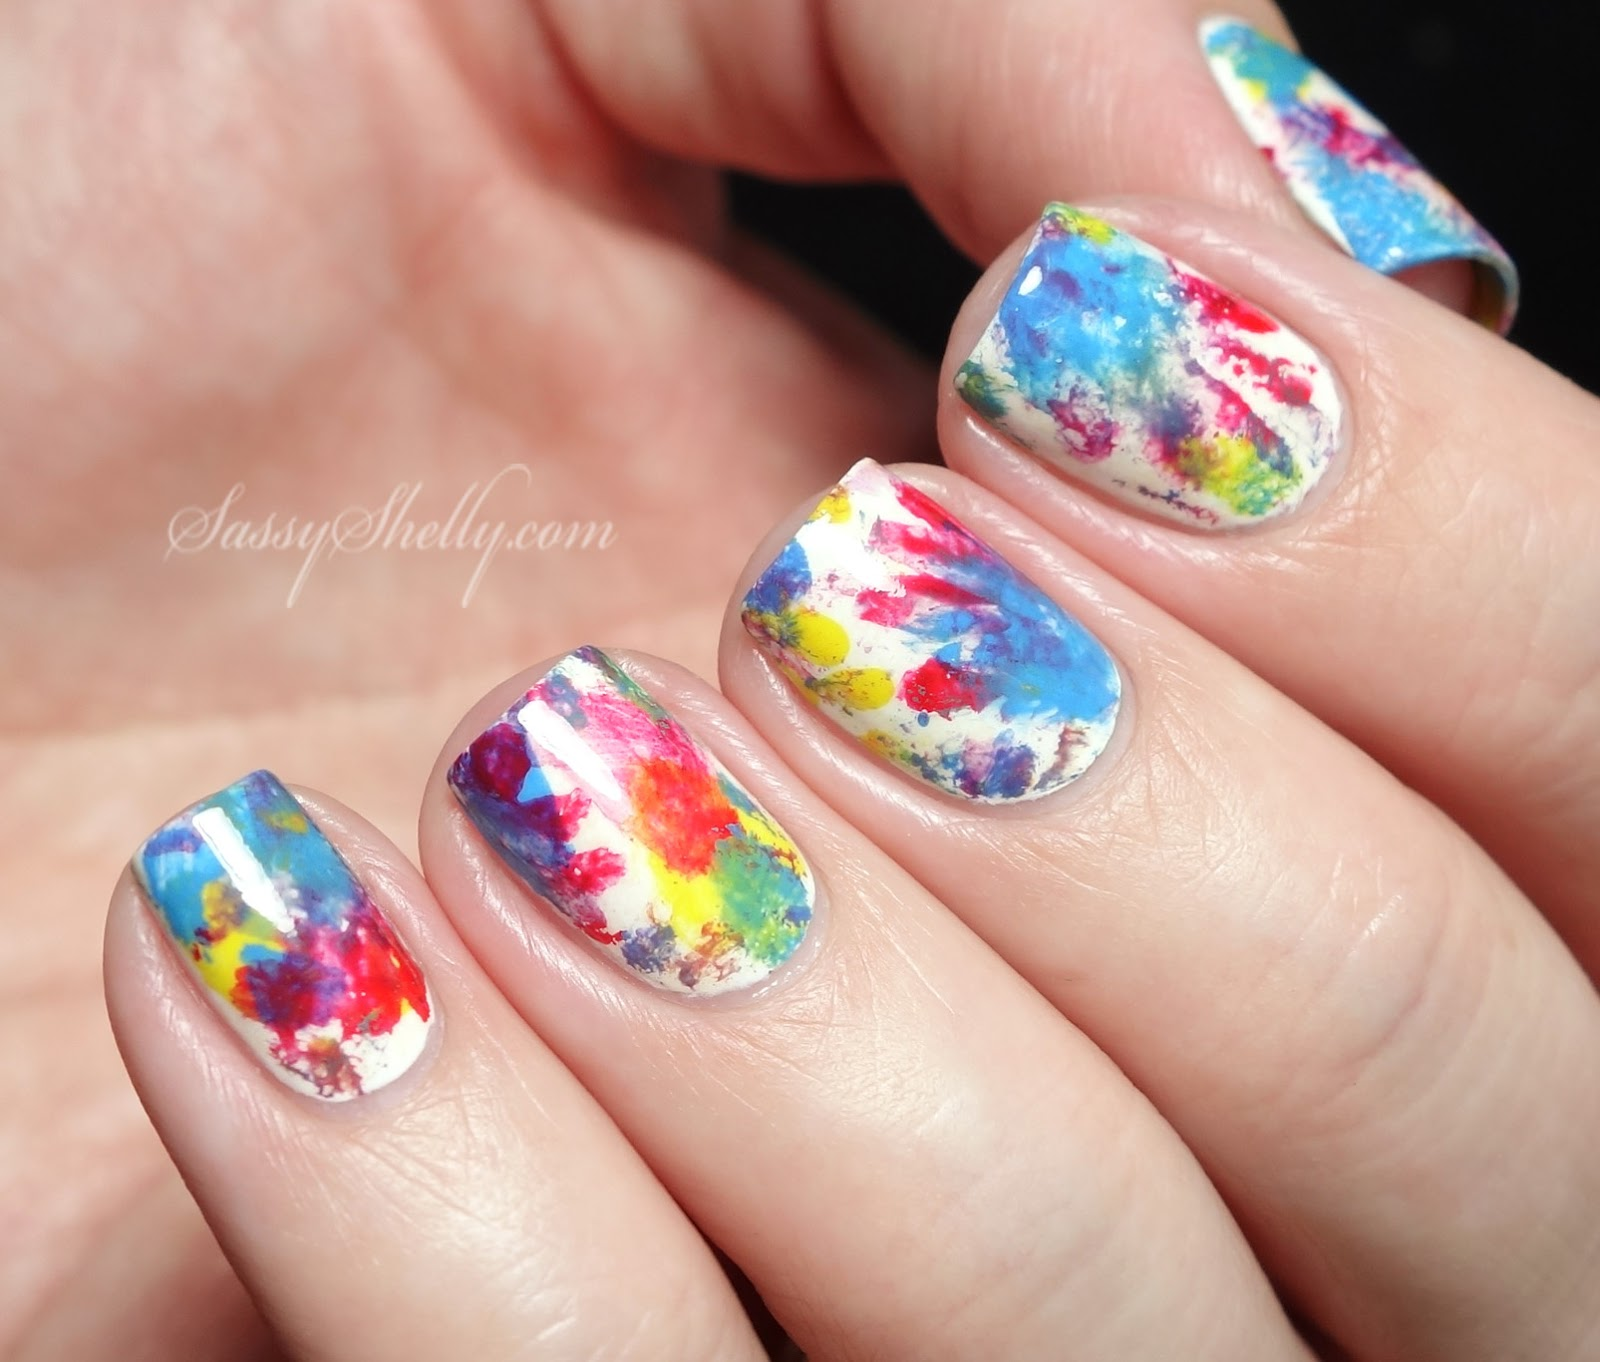 Colorful abstract sponge manicure inspired by kids finger paintings  // Sassy Shelly